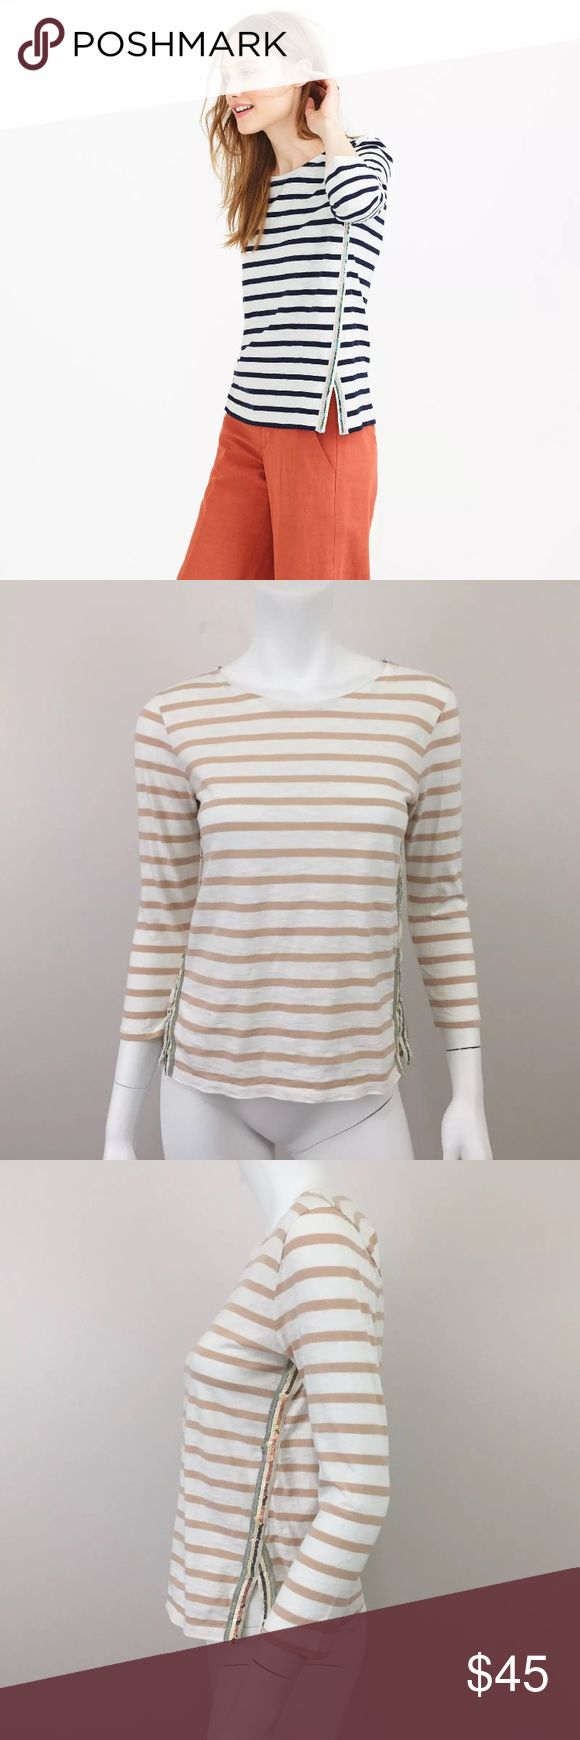 J.Crew XS Cotton Beaded Sailor Striped T-shirt EUC We took a classic boatneck T-shirt, added sparkly side stripes and then rolled the seams forward so you can actually see them from the front. Score. 	•	Cotton. 	•	Three-quarter sleeves. 	•	Hand wash. 	•	Import.  Measurements according to brand: Bust  33 Waist 26. #0155 J. Crew Tops